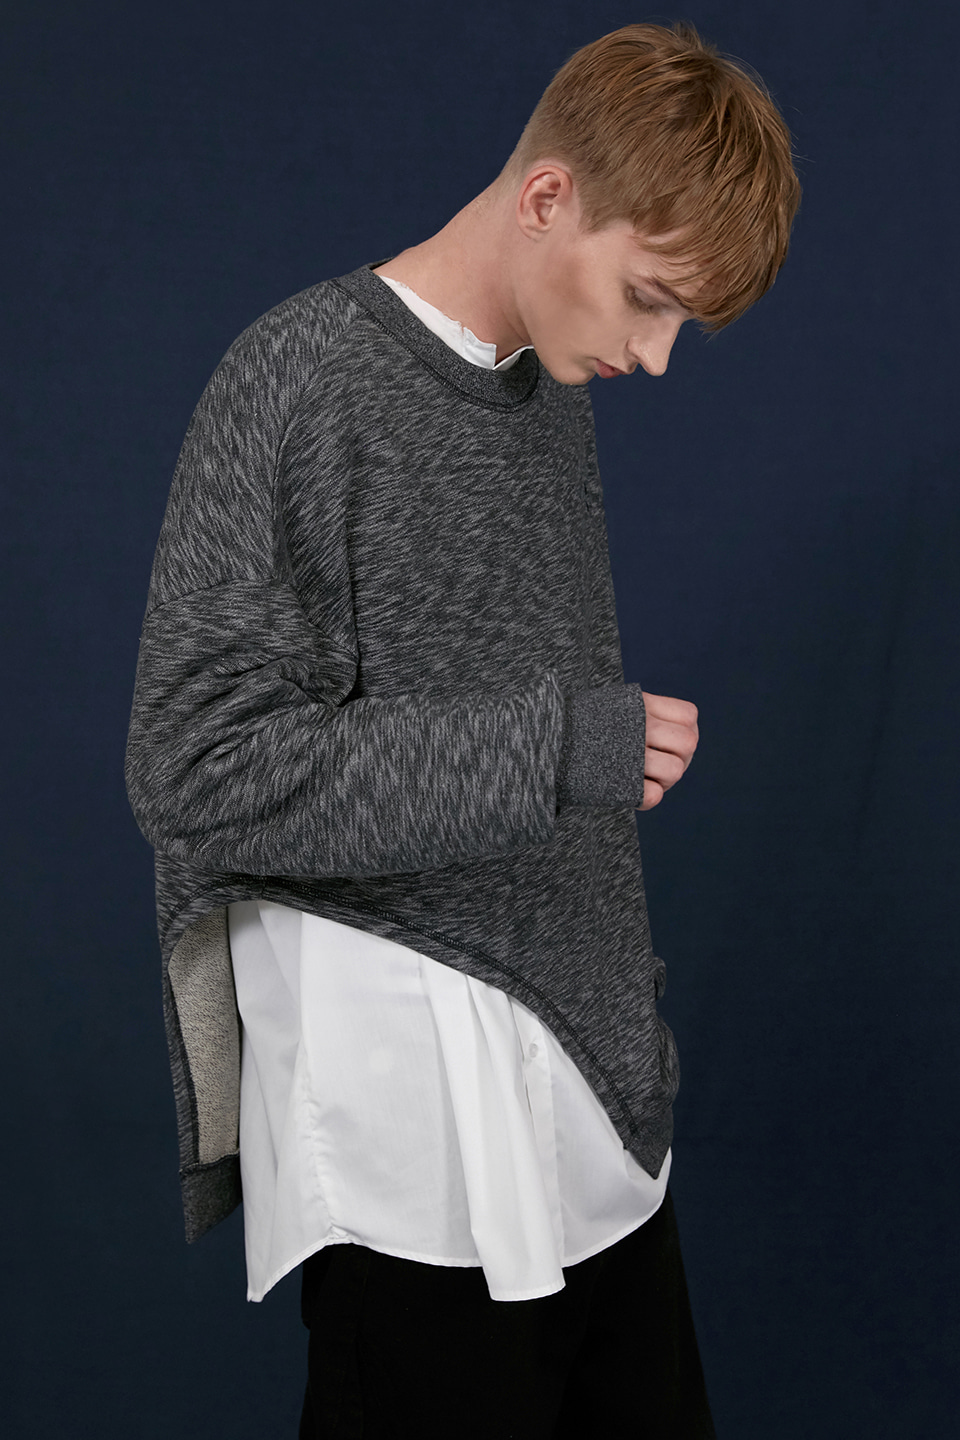 [UNISEX] VINTAGE LINE CUT LAYERED SWEATSHIRT - BLACK